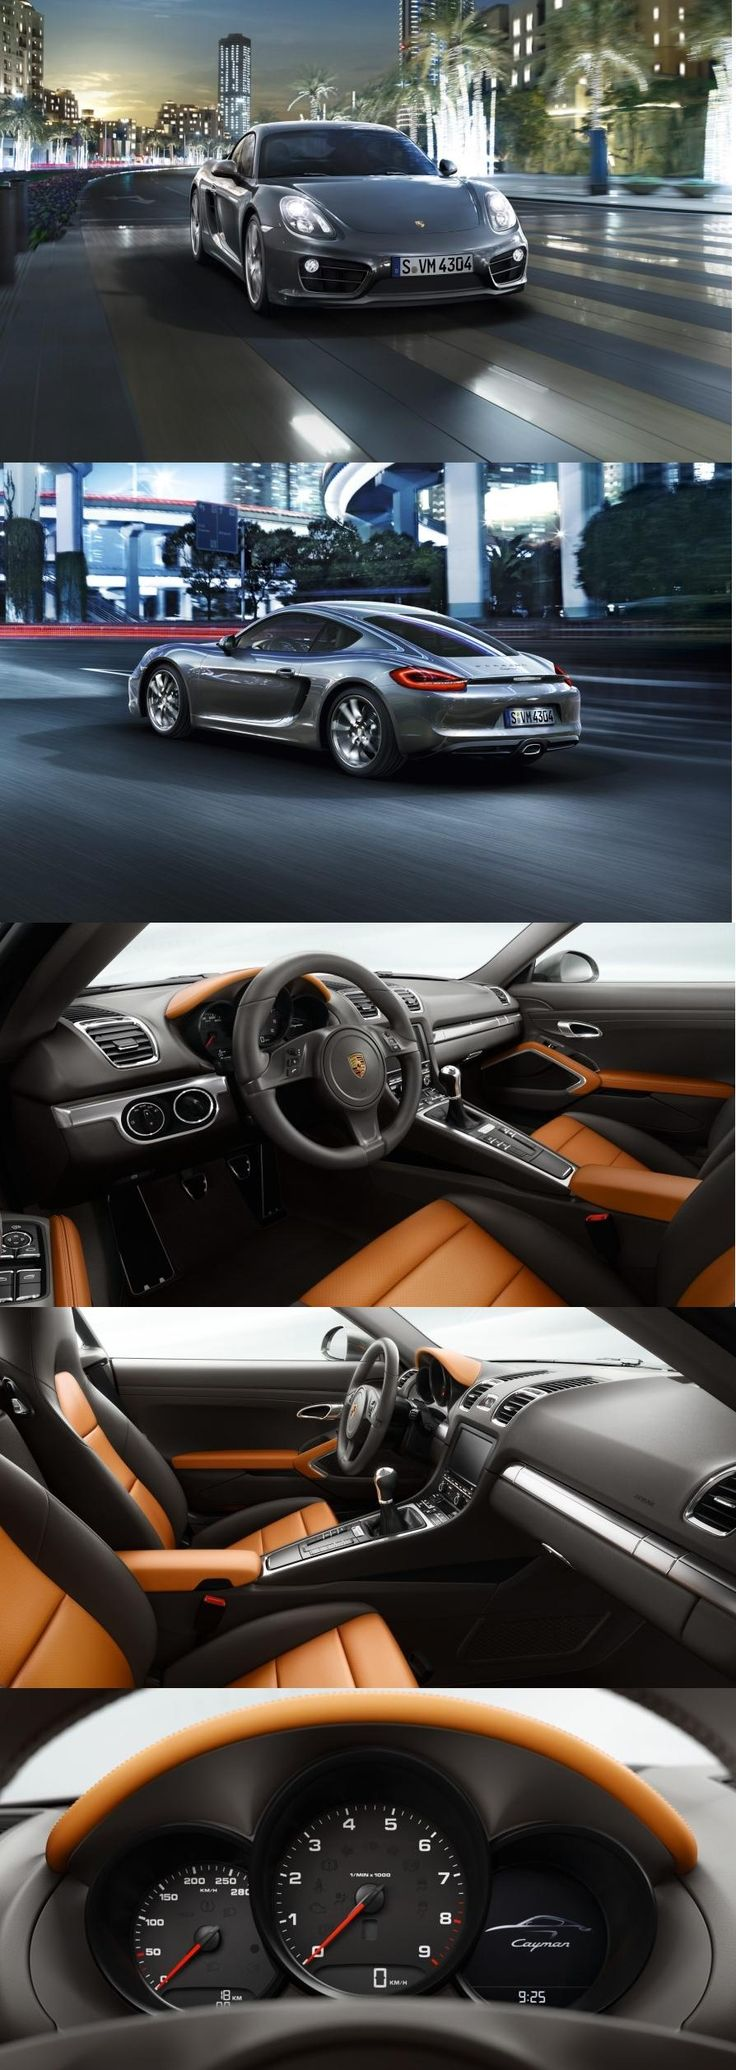 The car that i would like to have would be the Porche Cayman 13